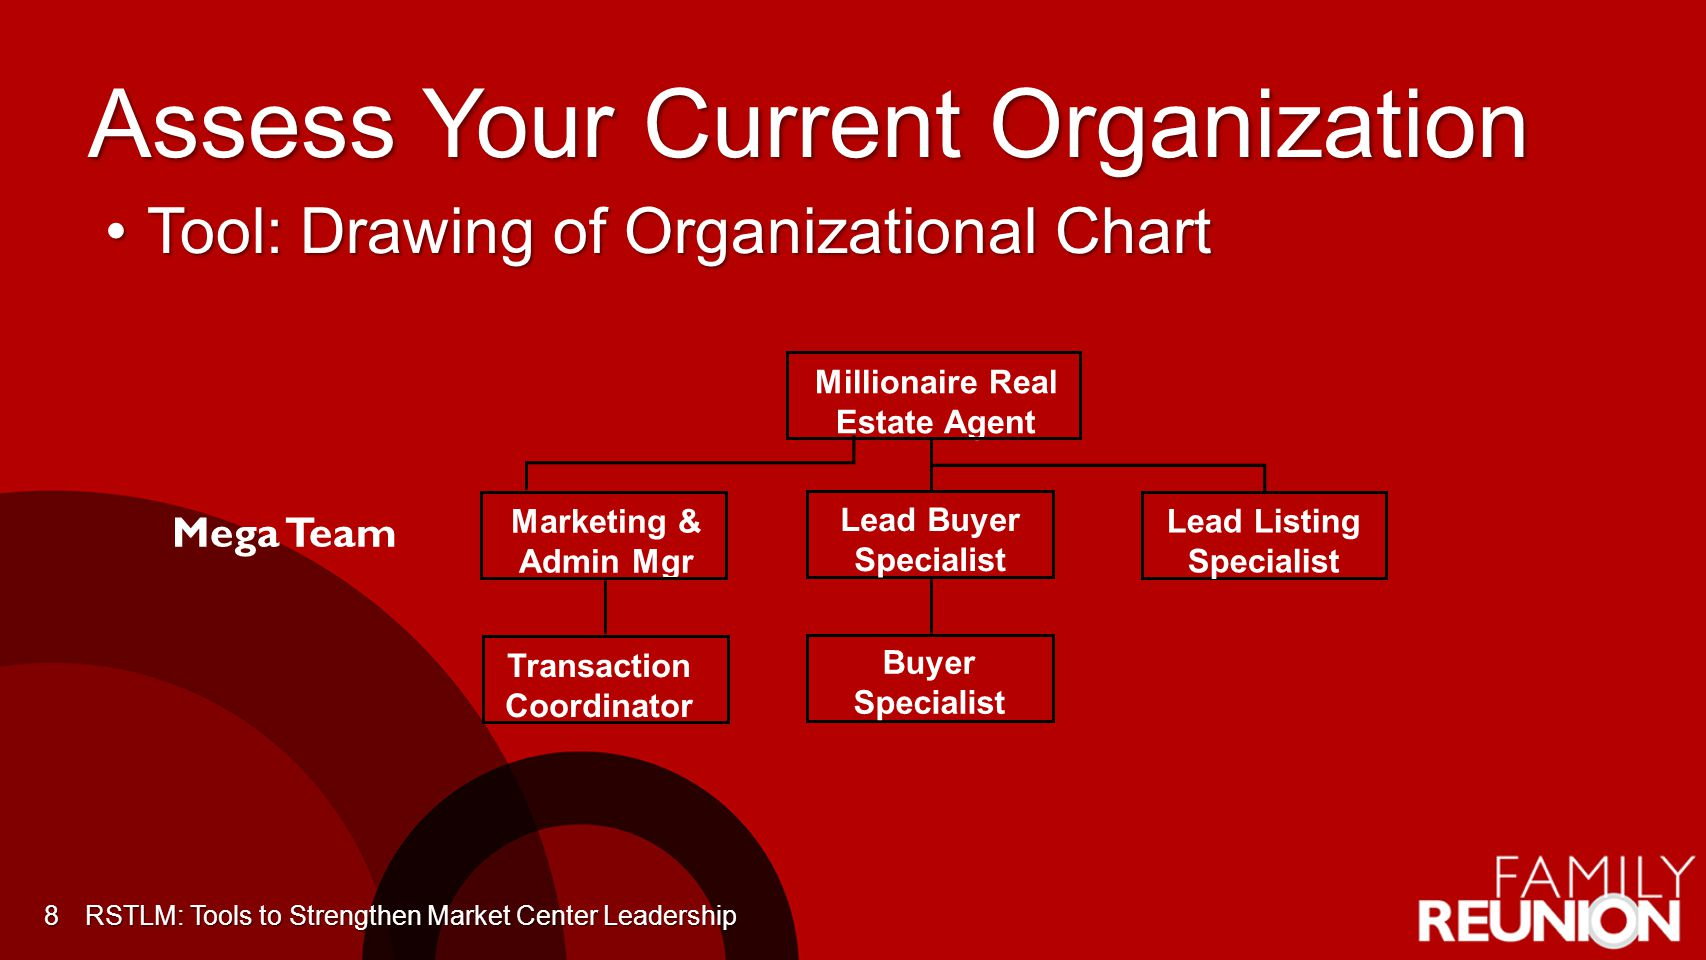 Assess Your Current Organization Tool: Drawing of Organizational ChartTool: Drawing of Organizational Chart 8 Millionaire Real Estate Agent Marketing & Admin Mgr Transaction Coordinator Buyer Specialist Lead Buyer Specialist Lead Listing Specialist Mega Team RSTLM: Tools to Strengthen Market Center Leadership